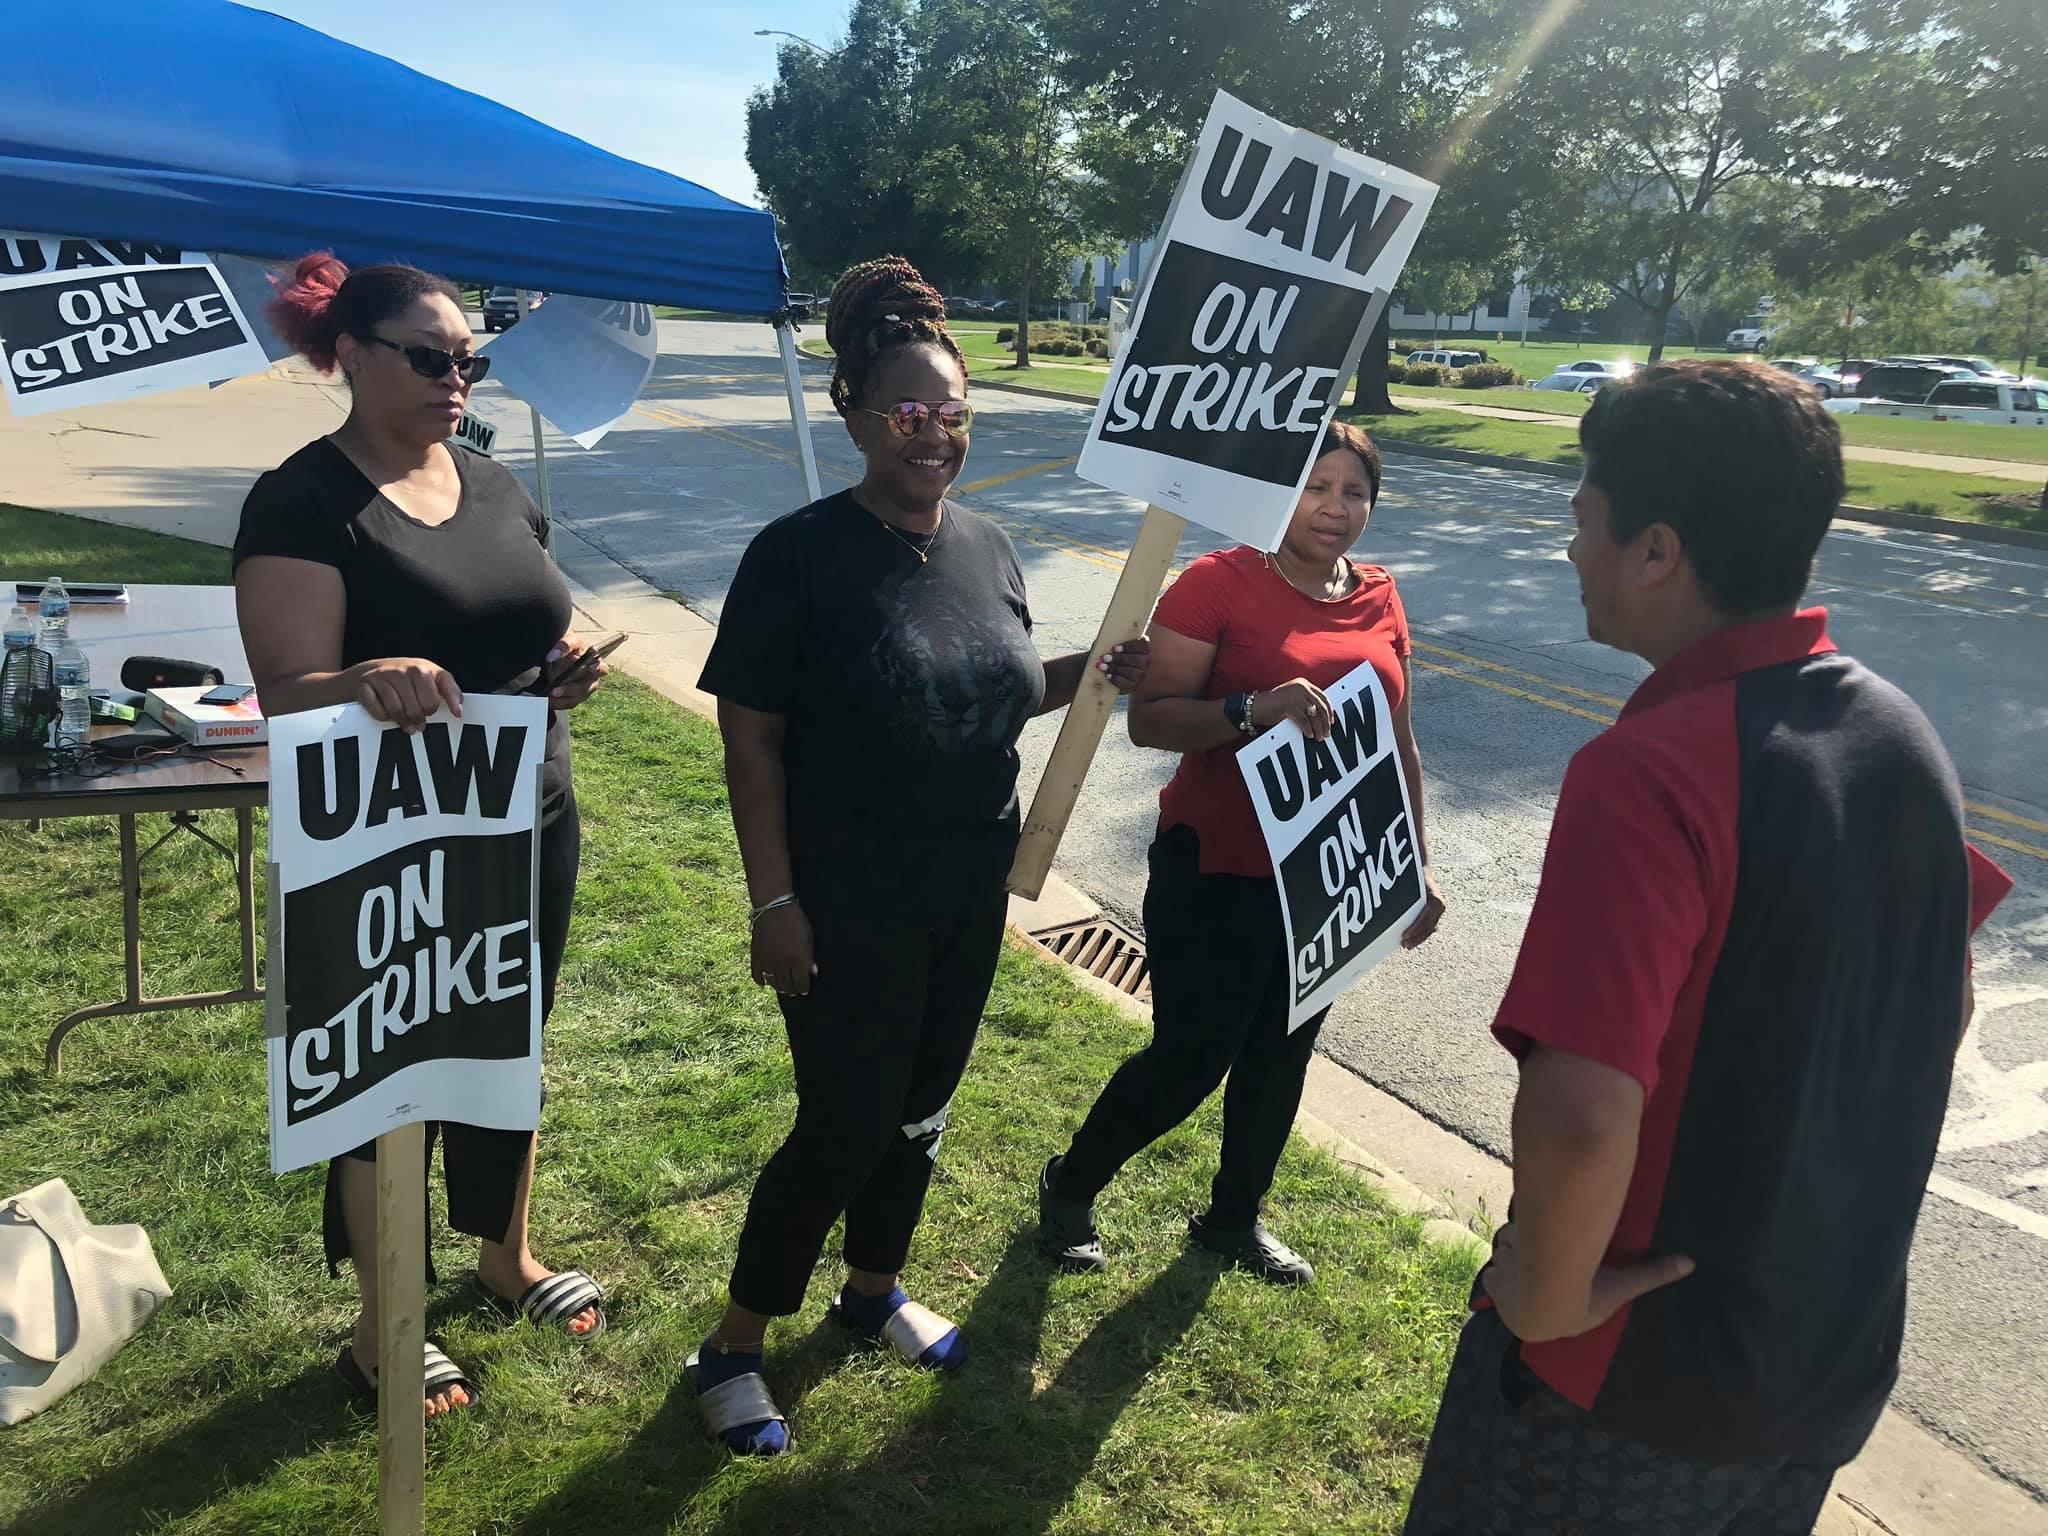 UAW On Strike